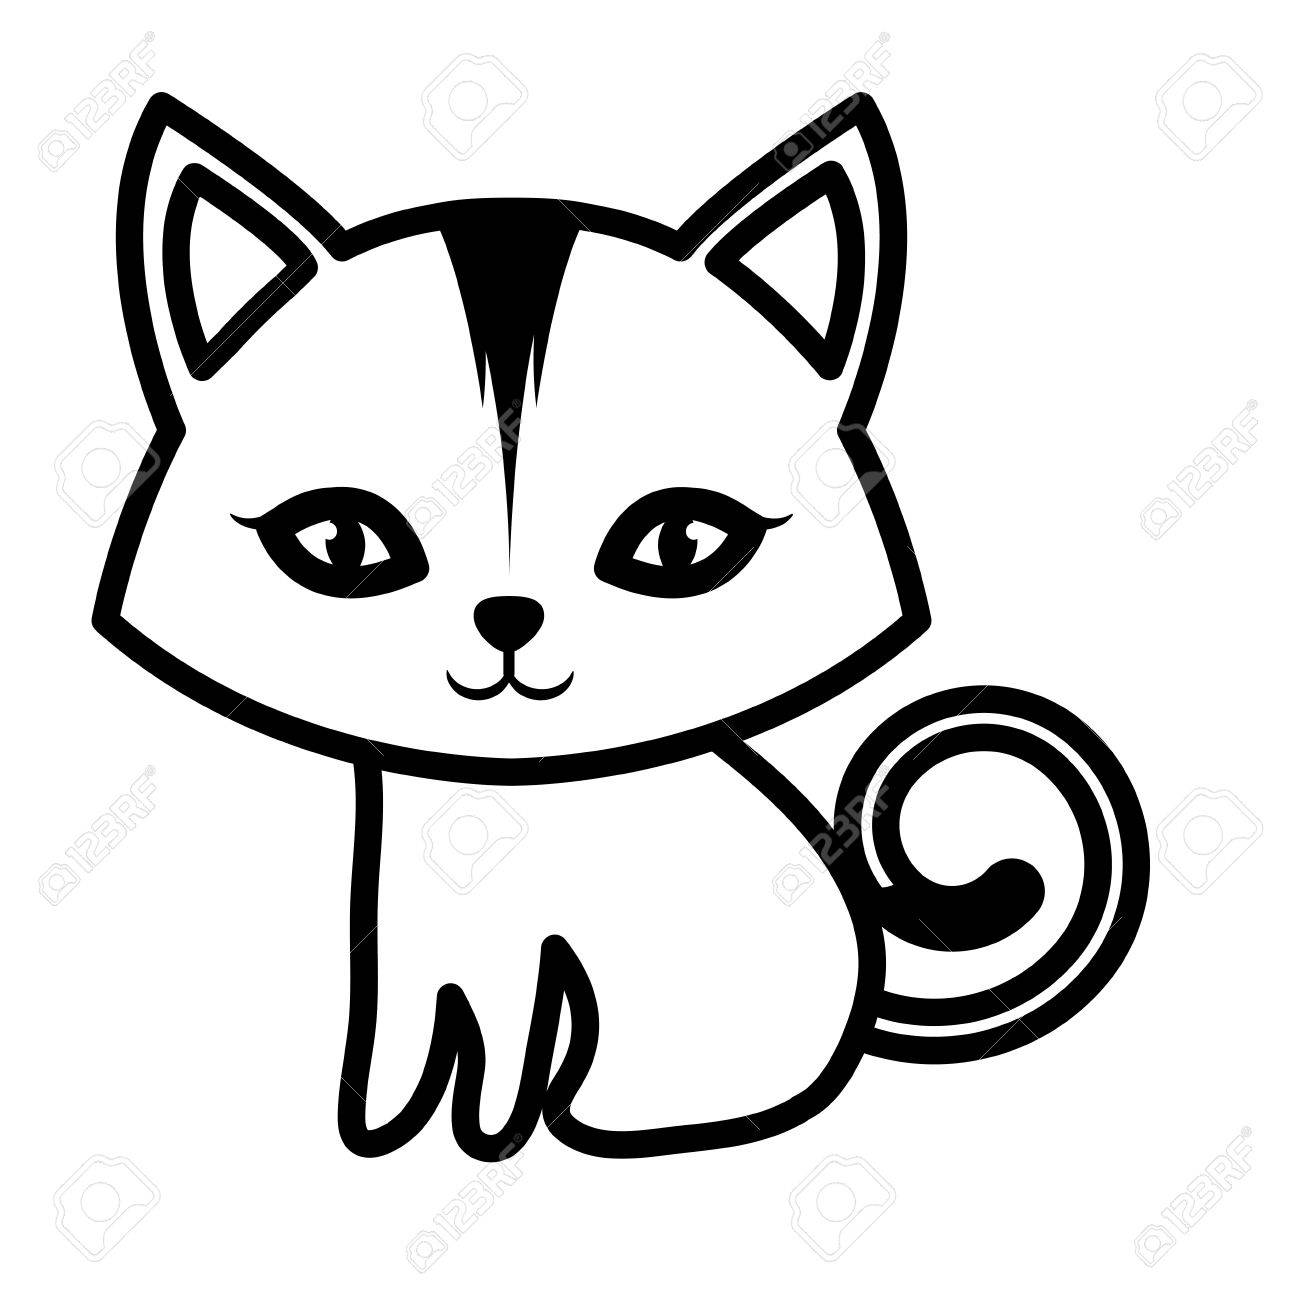 1300x1300 Cat Small Mammal Furry Outline Vector Illustration Eps 10 Royalty